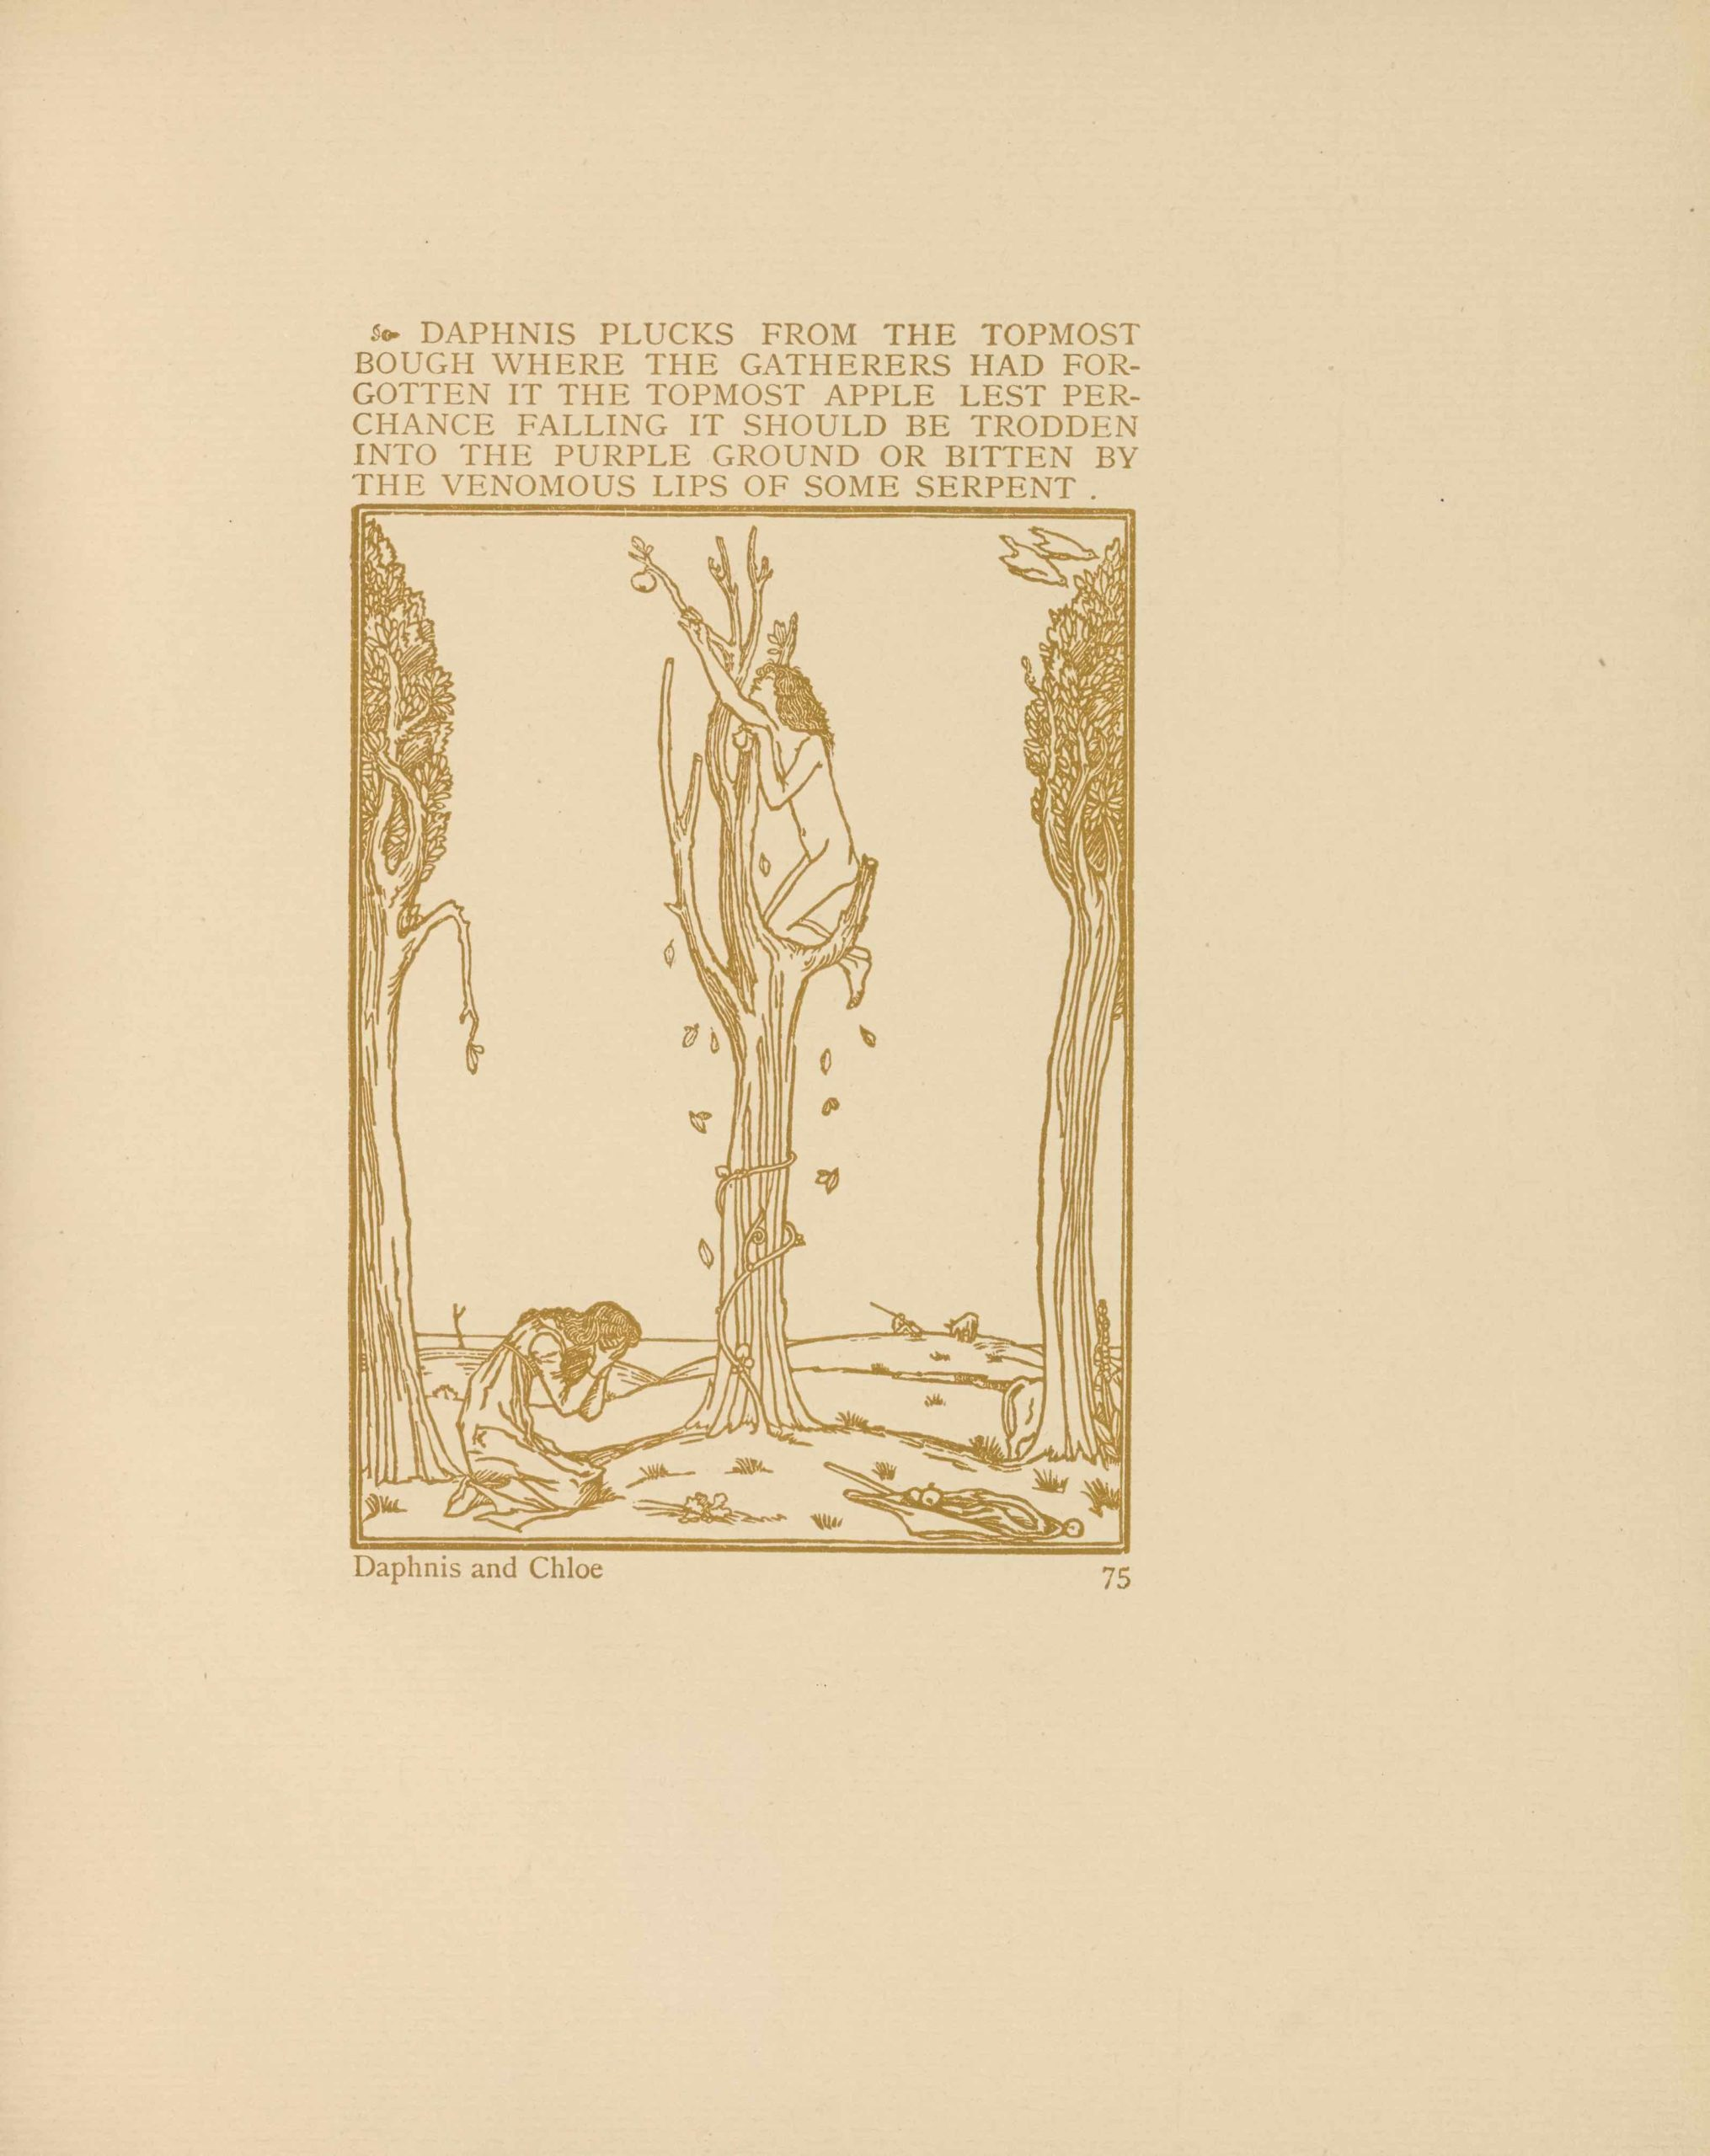 """The wood engraving, an illustration of """"Daphnis and Chloe,"""" is printed in golden brown ink within a                          portrait oriented rectangular double frame. Above the image, printed in the same ink, is typography in all                          caps, preceded by a fleuron: """"Daphnis plucks from the topmost bough where the gatherers had forgotten it the                          topmost apple lest perchance falling it should be trodden into the purpose ground or bitten by the venomous                          lips of some serpent."""" The typography is the same width as the image, beneath which is printed the title                          """"Daphnis and Chloe"""" and the page number 75. Centred in the image is a barren tree in which Daphnis, perched                          on a high branch, reaches out for an apple while Chloe kneels at the base of the tree. Daphnis is nude, with                          long hair that cascades over his shoulder. From the ground, a single vine grows upward and is wrapped around                          the tree. Chloe kneels to the left of the tree, holding her face in her hands. She wears a long dress and shoes.                          In the far right foreground is a crumpled basket or cloth holding apples. Two blooming trees with leafy foliage                          frame either side of the central tree. An animal is half-hidden behind the right tree, with its rear visible.                          In the distant background are hills, with a shepherd and sheep in the distance. At the top of the image, two                          white birds, possibly doves, fly down towards the tree at the right."""